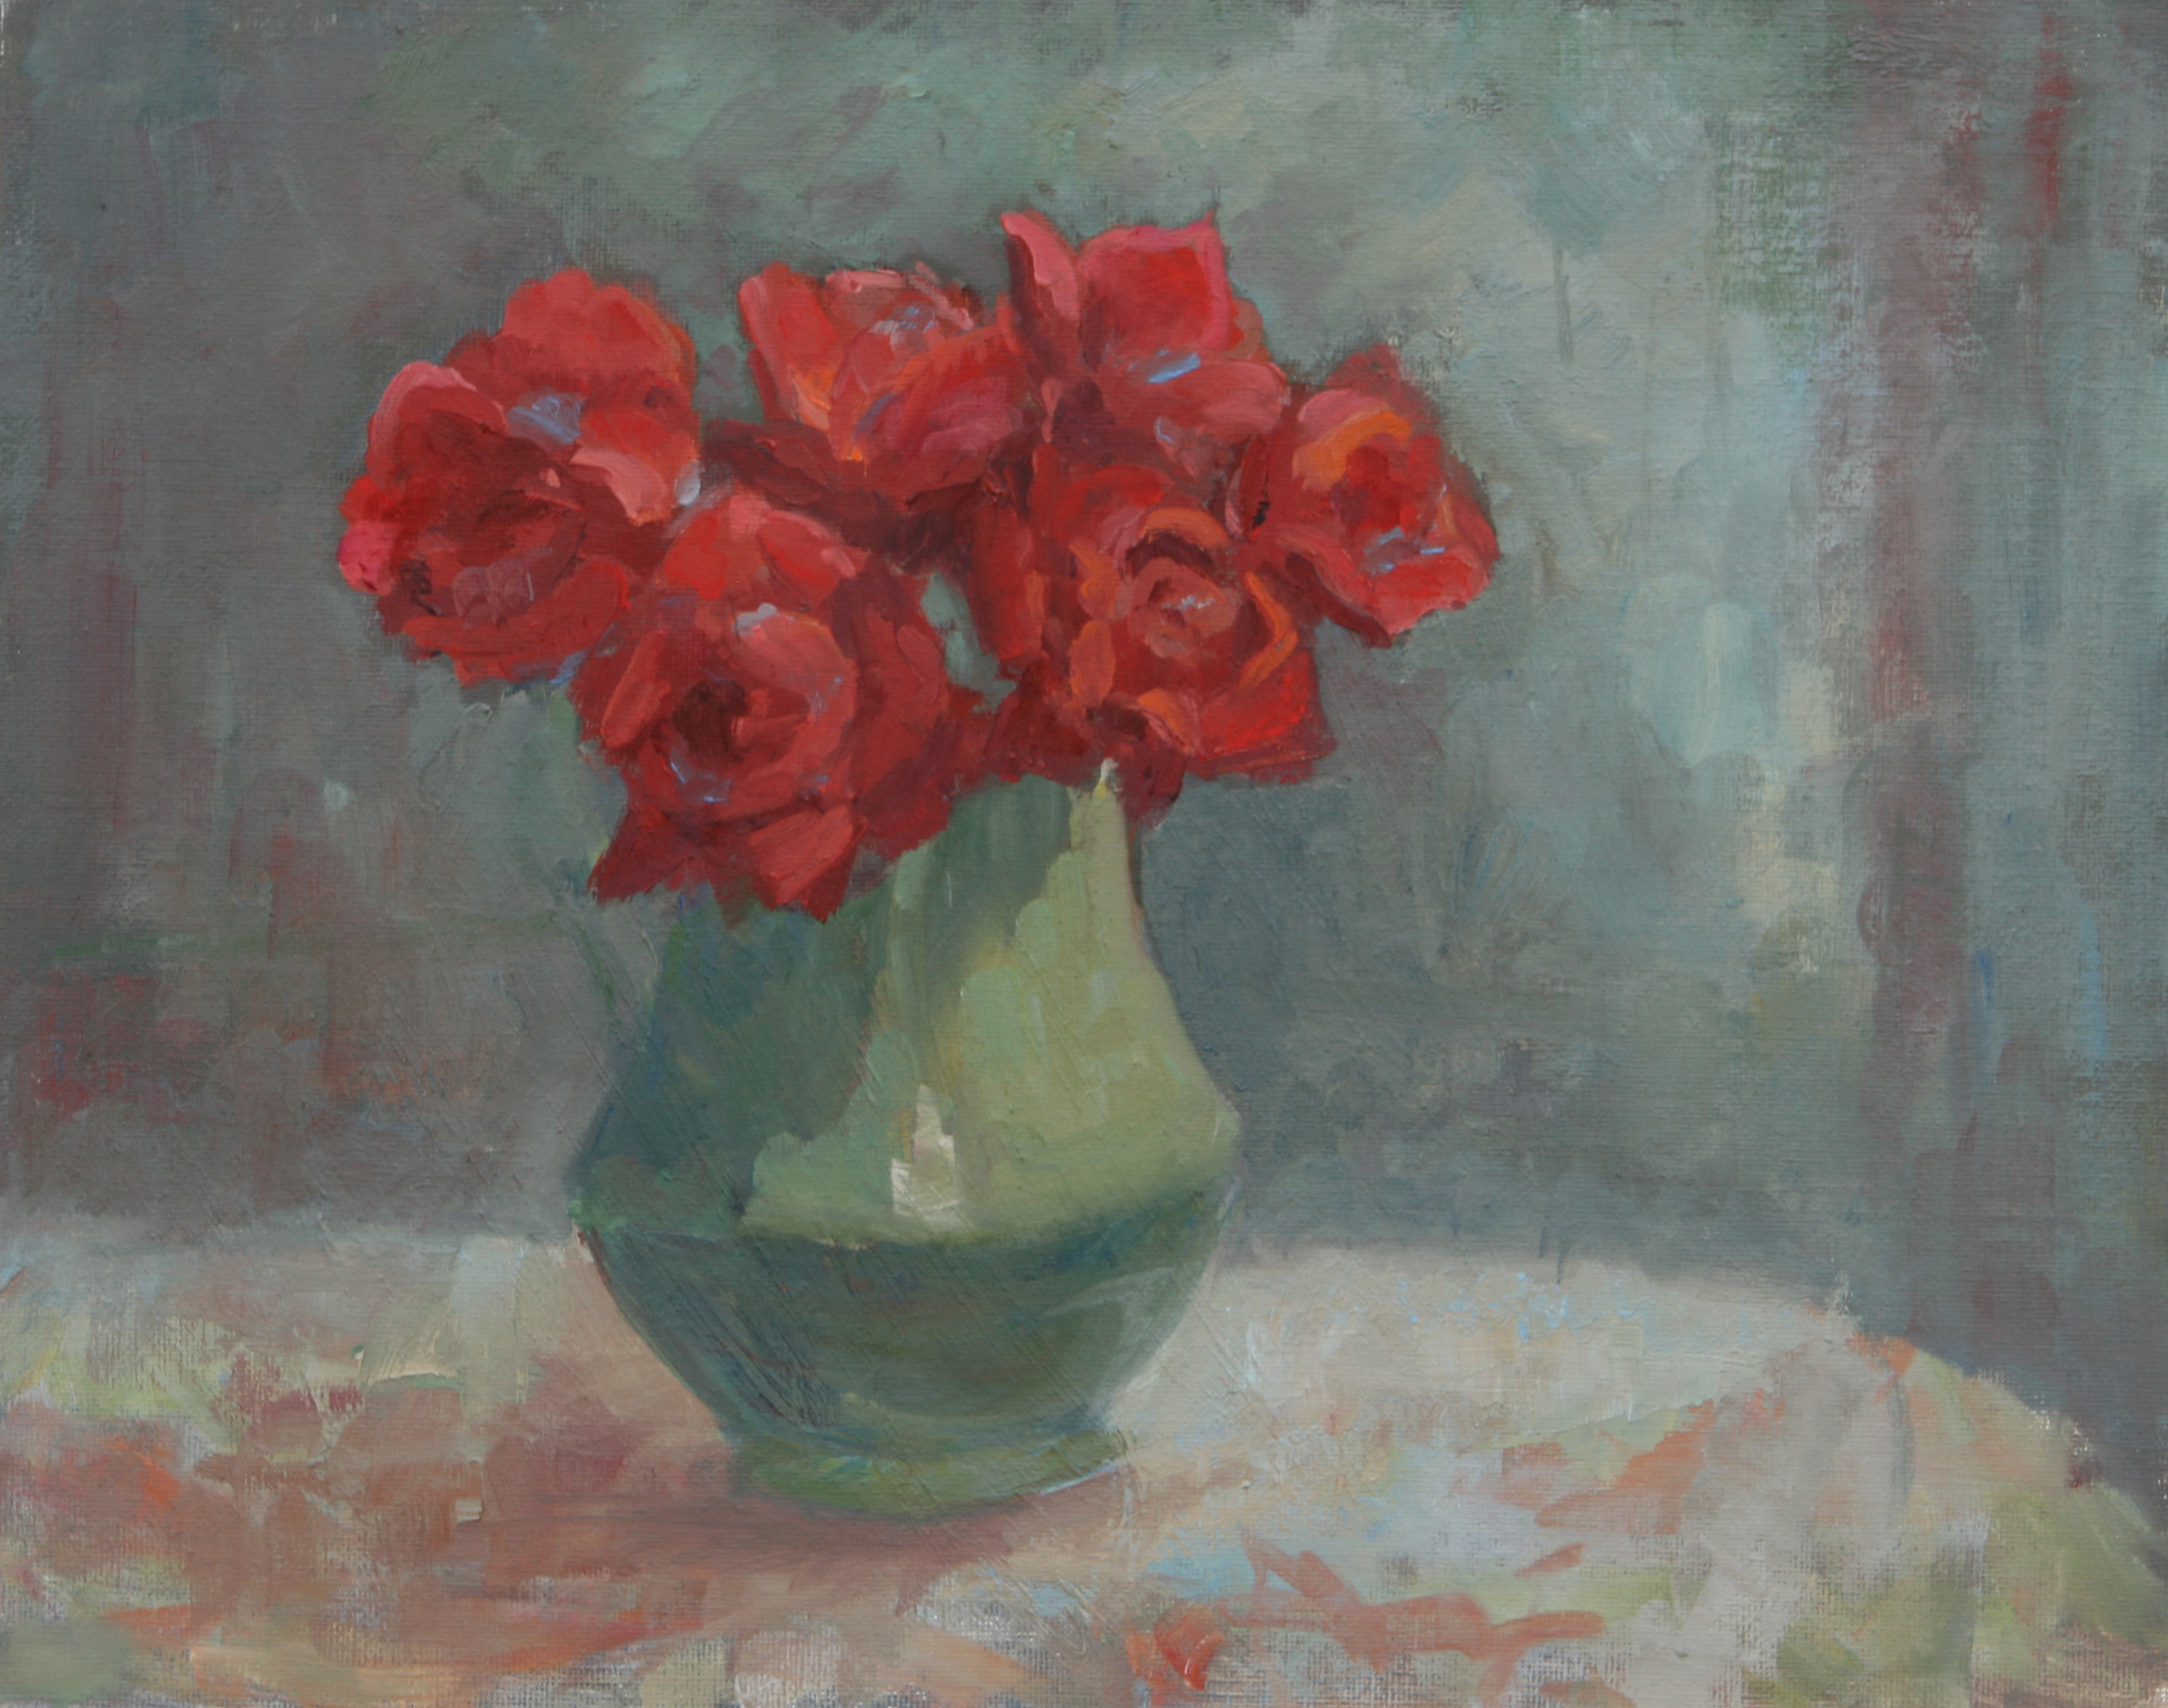 Red Roses in a Green Pitcher